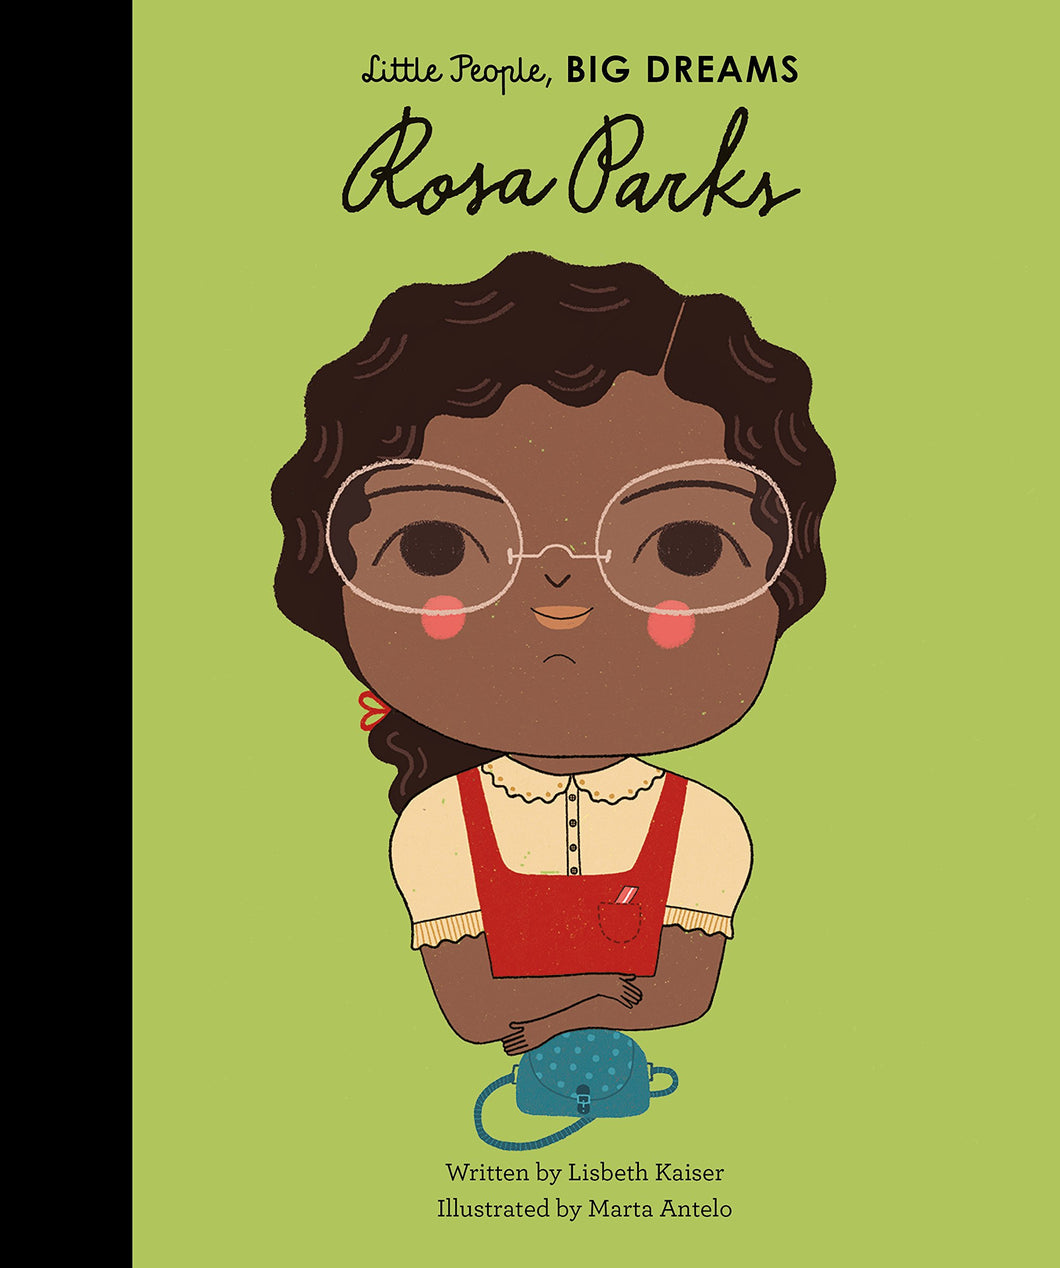 Rosa Parks (Little People, Big Dreams) - Children's Hardback Book